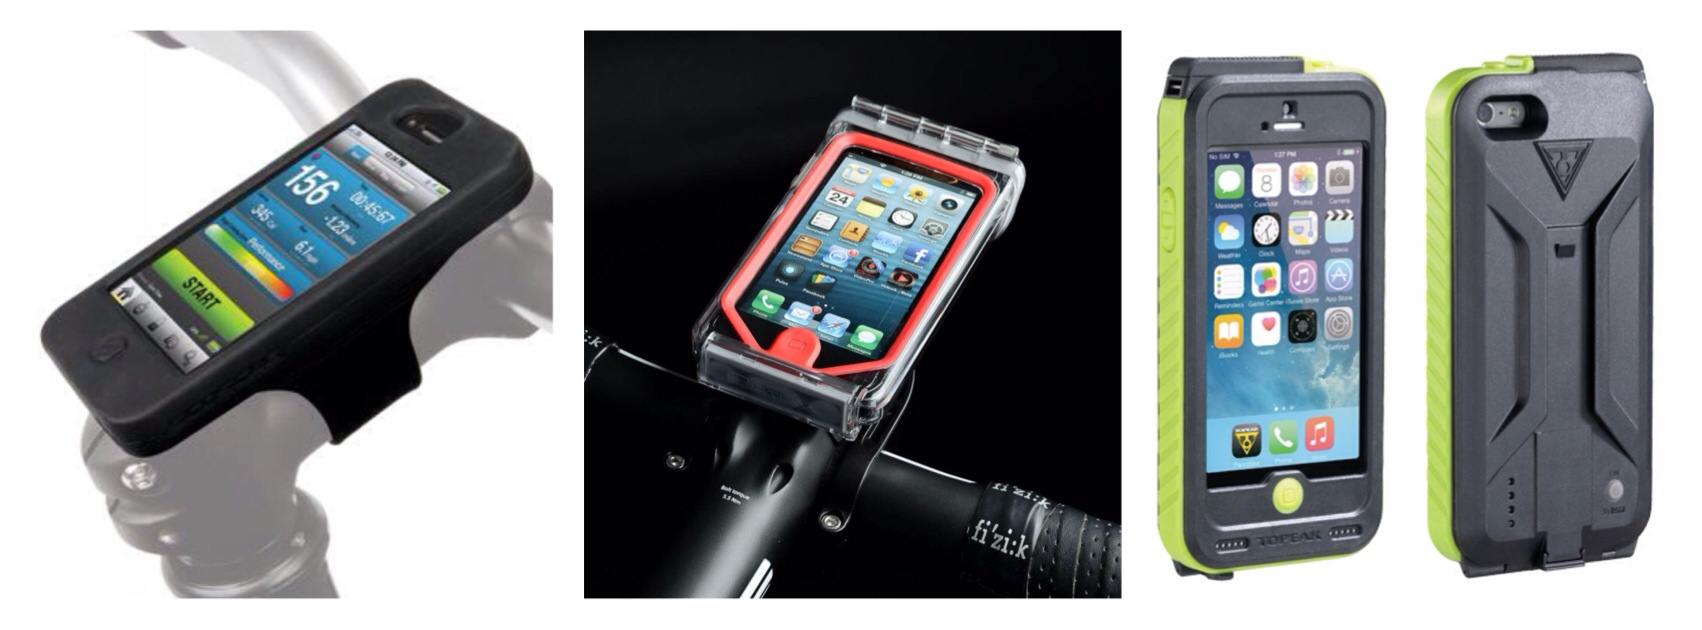 sports shoes b23f0 69bac The Best Bike Smartphone Cases & Mounts for Cycling - CyclingAbout.com